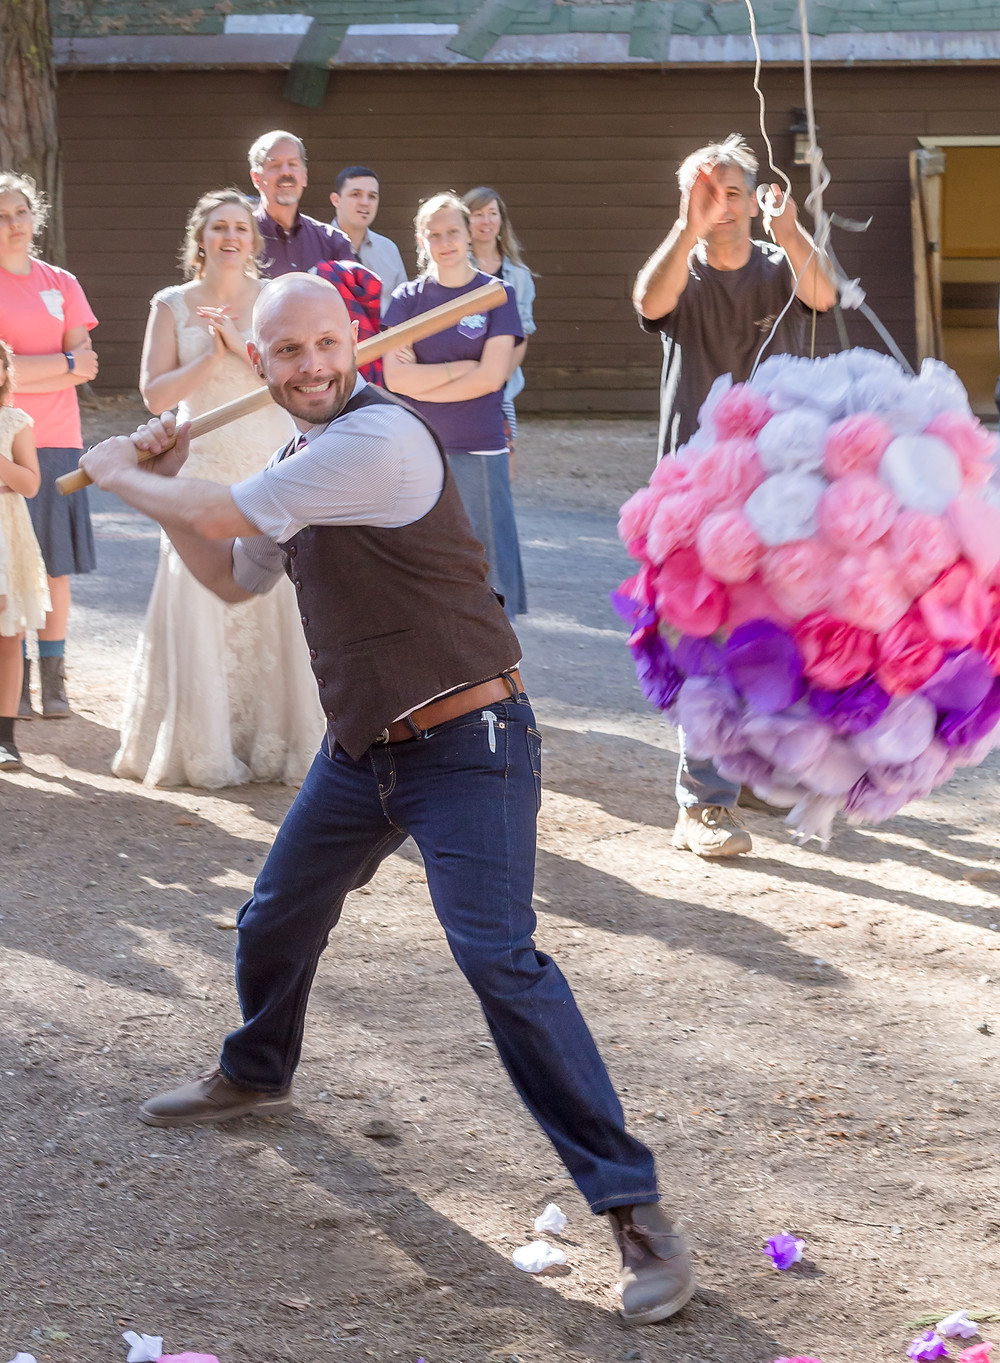 Groom & wedding piñata